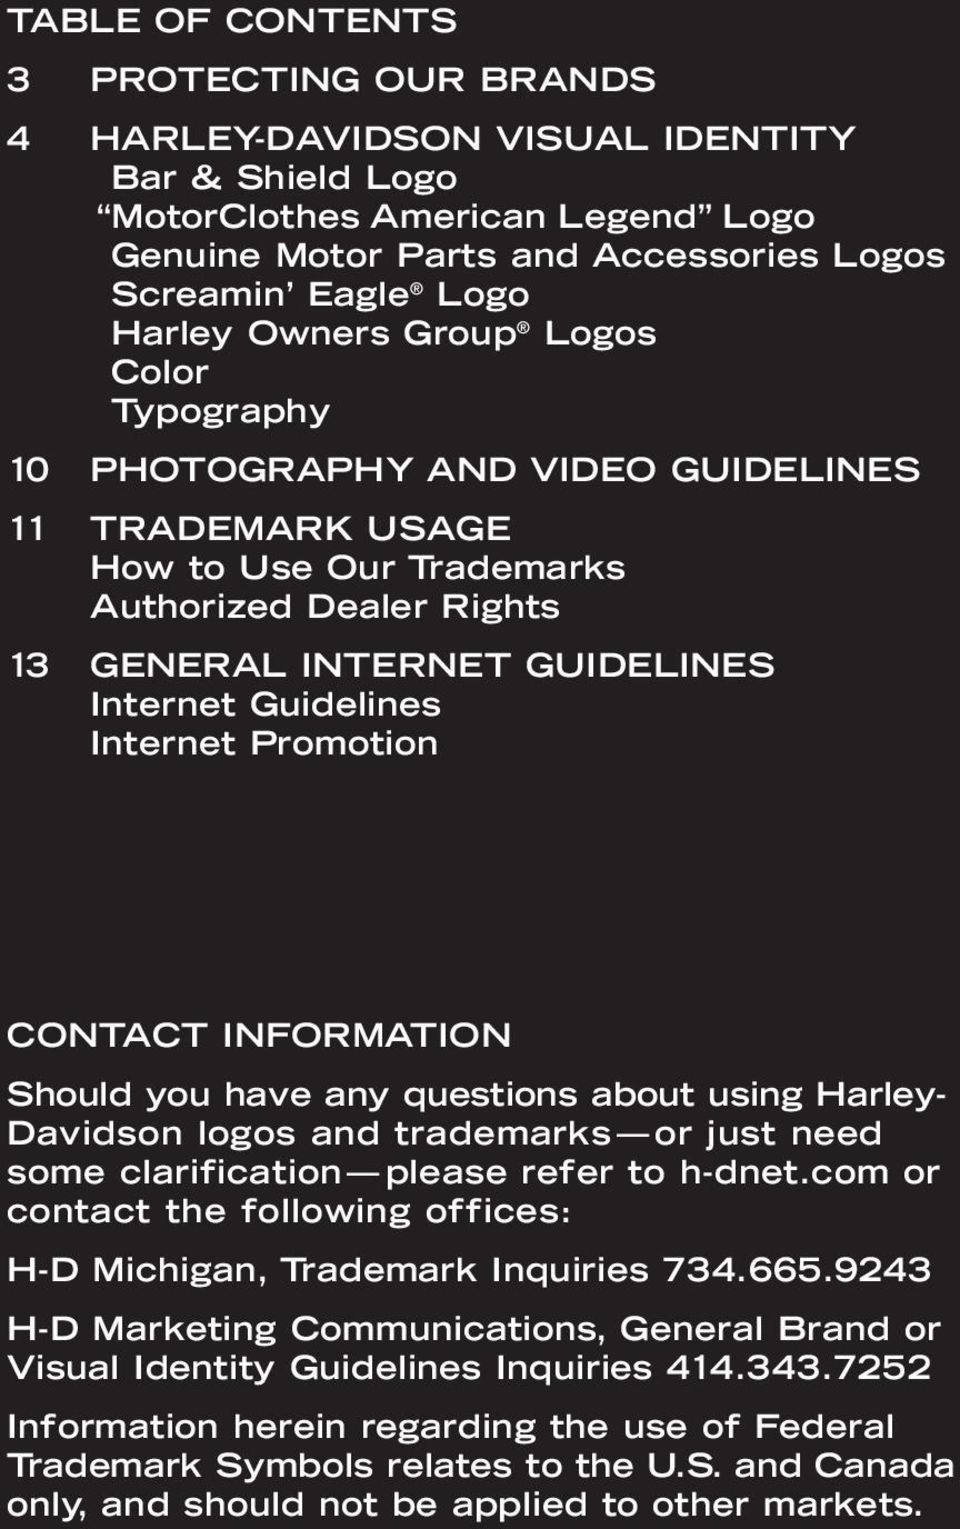 Internet Promotion CONTACT INFORMATION Should you have any questions about using Harley- Davidson logos and trademarks or just need some clarification please refer to h-dnet.